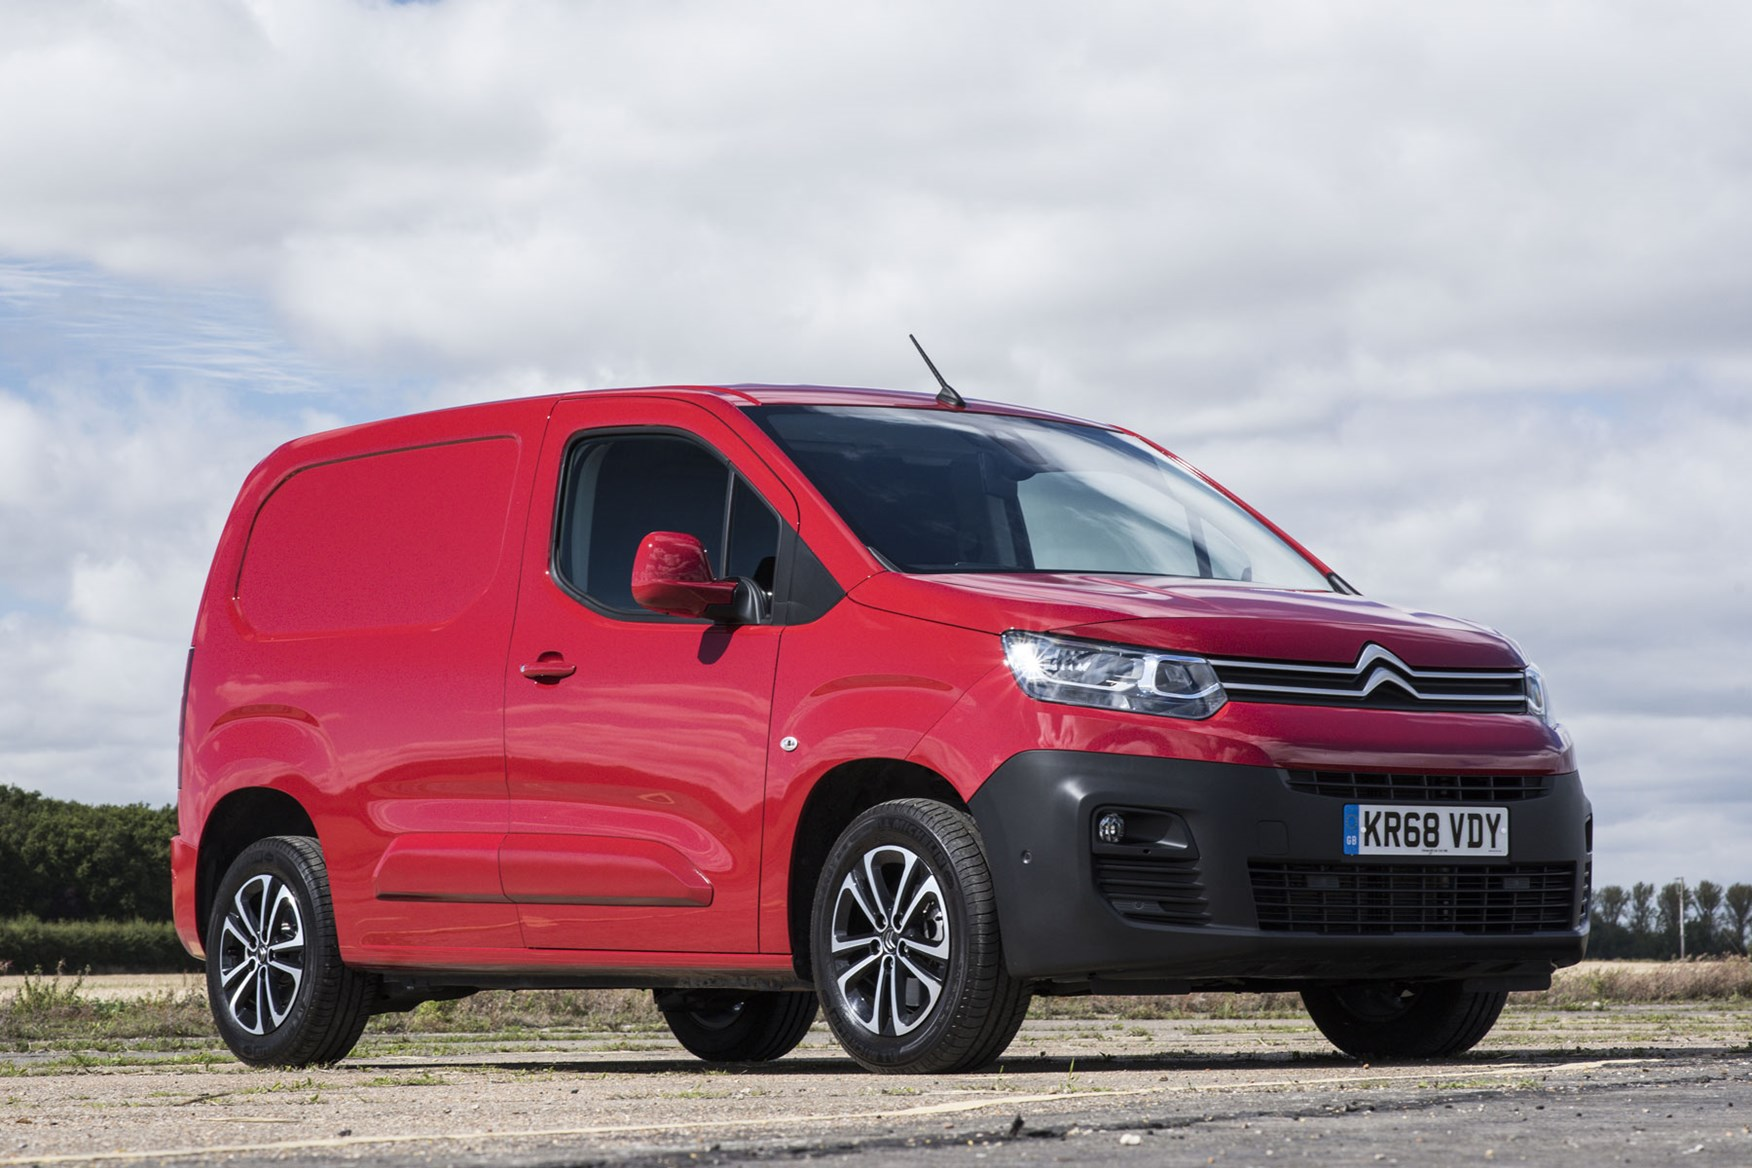 Citroen Berlingo van review - 2019 model, front view, red